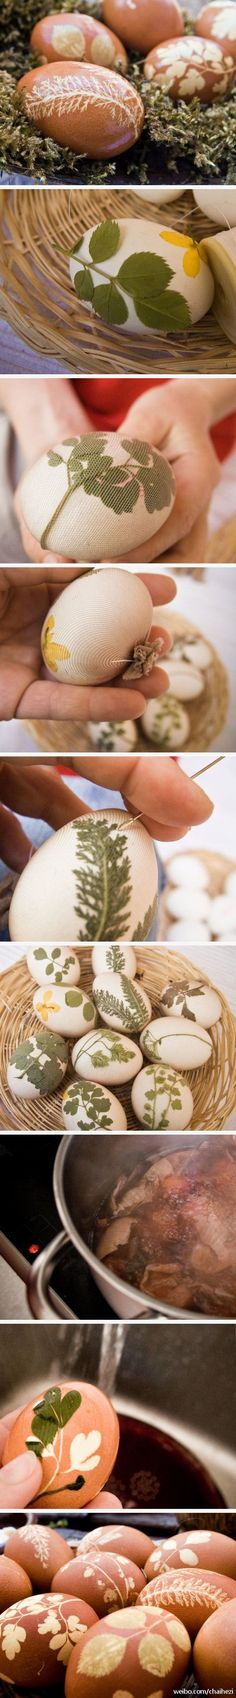 Natural dyed Easter eggs with onion skins. Place leaves and flowers around eggs, wrap in old panty hose and tie off. Use a needle to separate leaves and petals for better defined outlines. Boil in a pot of onion skins and voila!